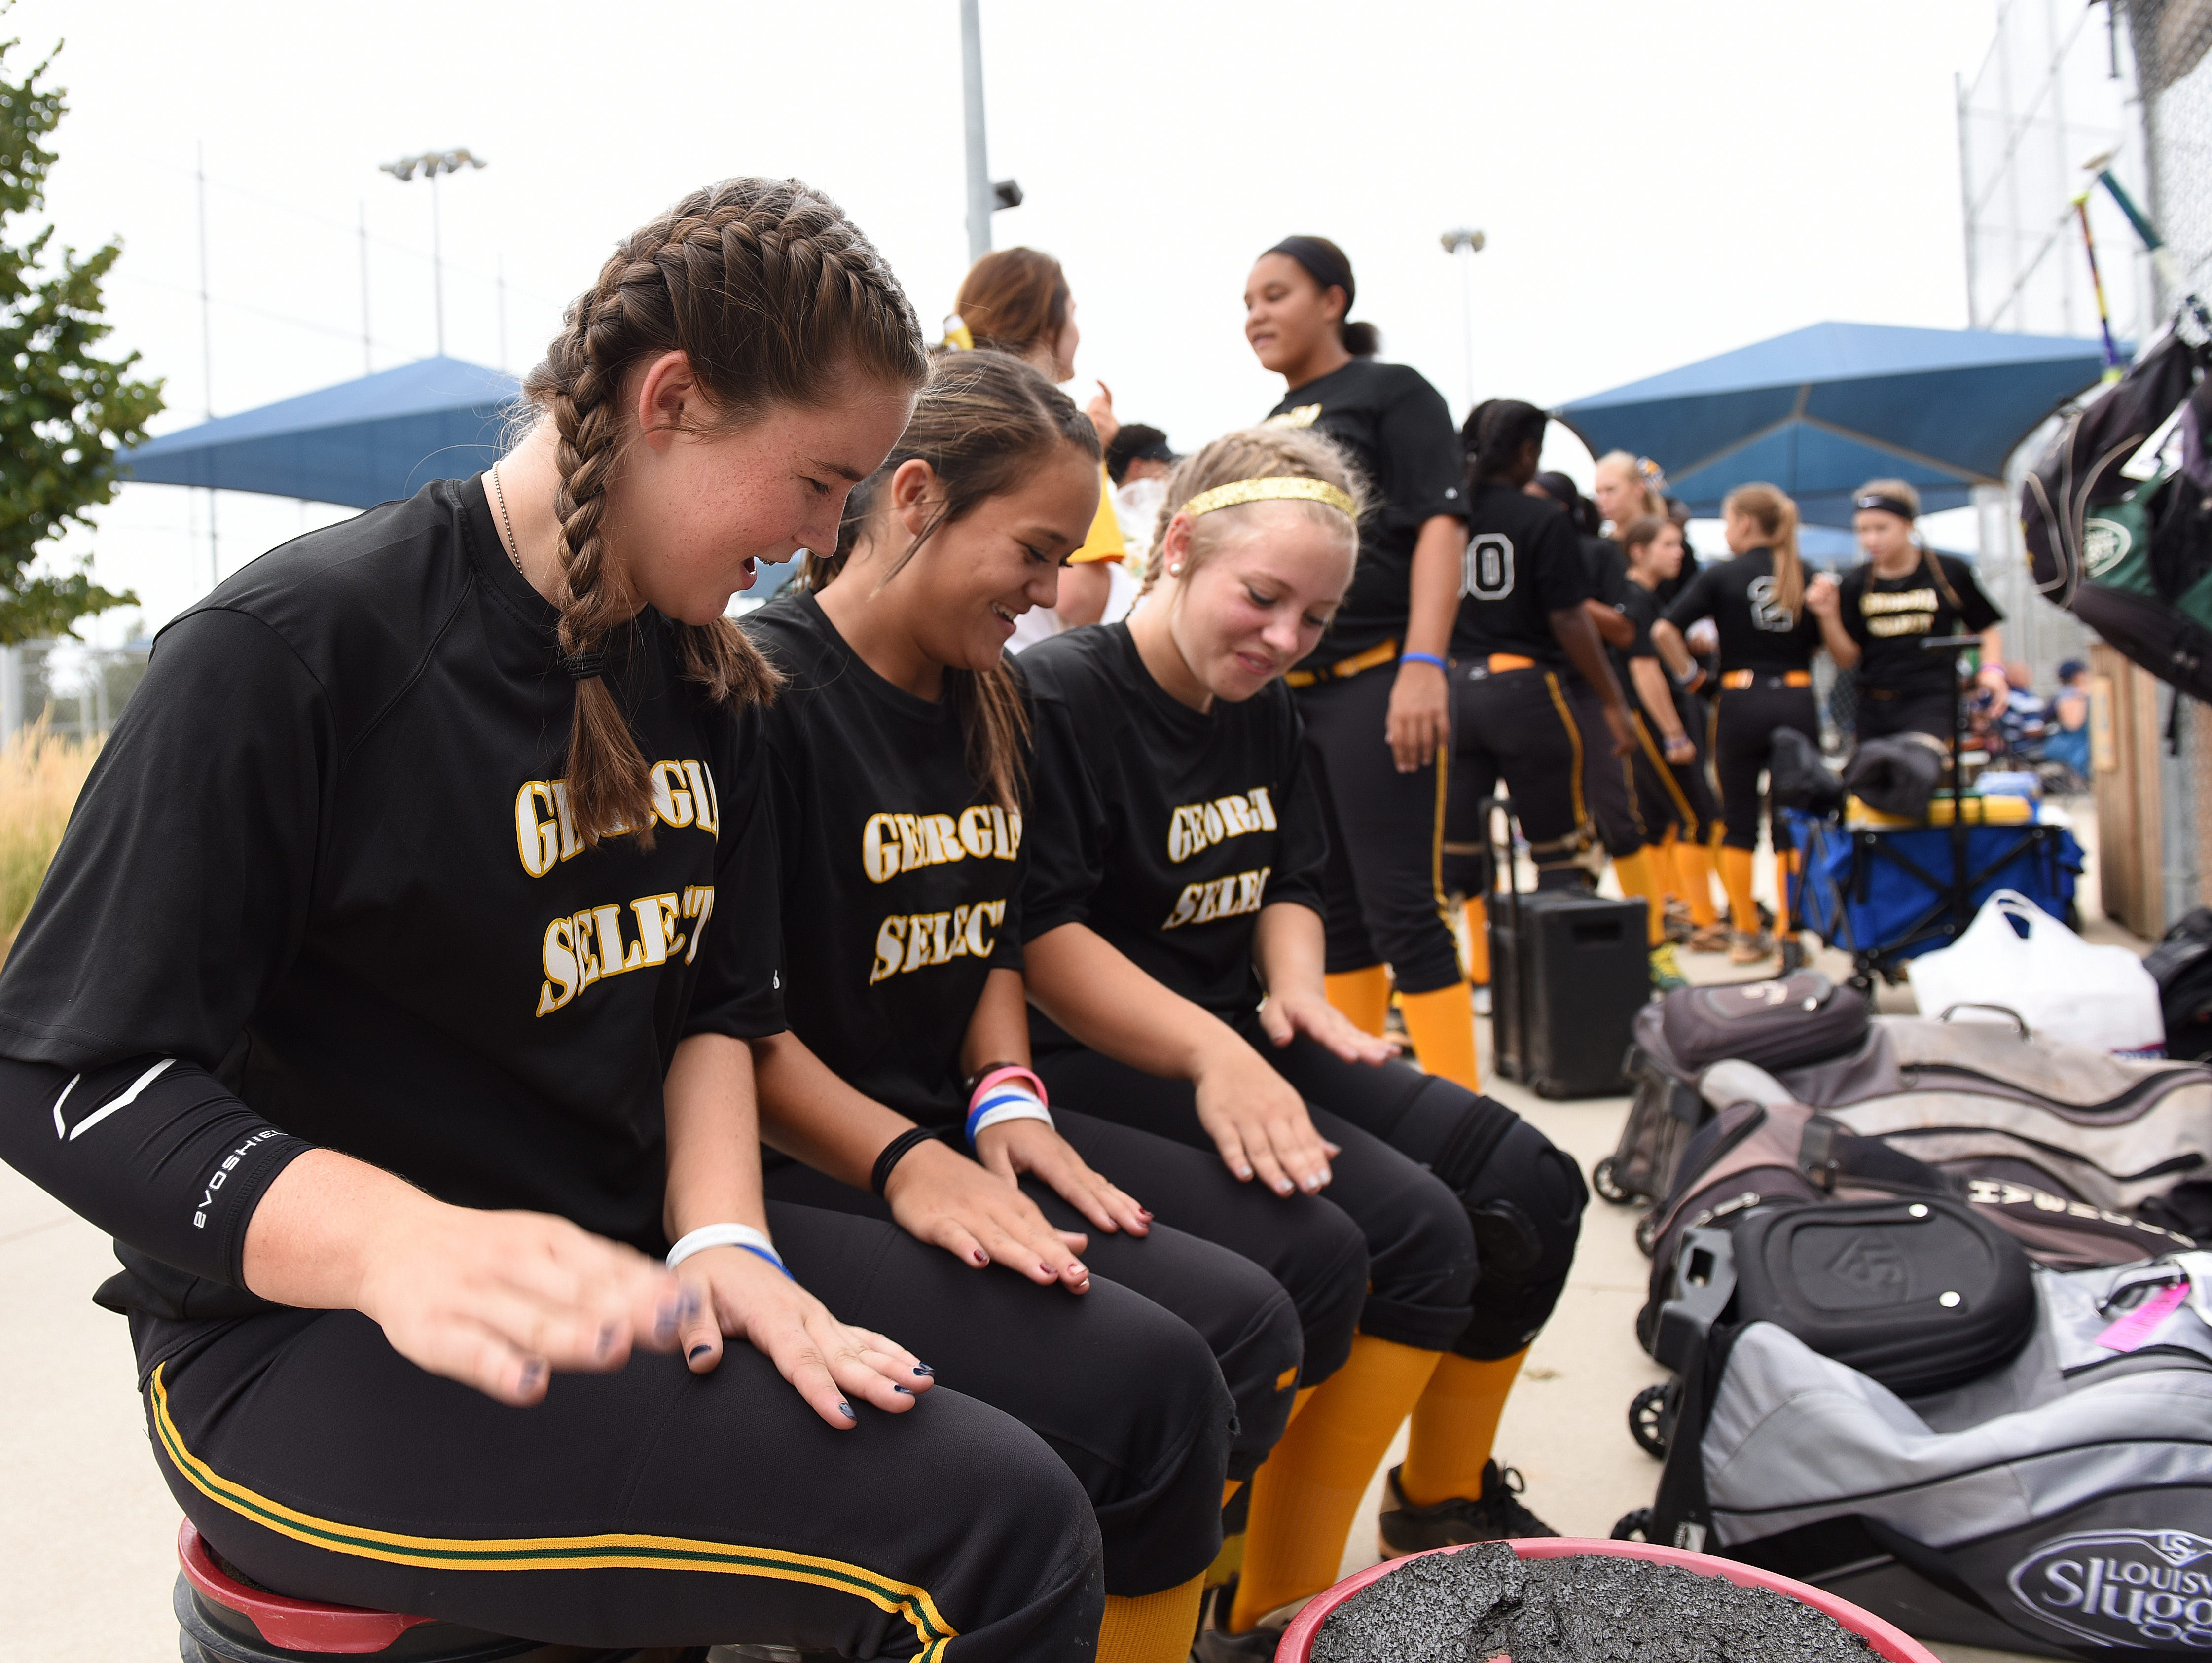 George Select's Madyson Coe, Faith Barth and London Berkhiser chant before they play during the ASA 14U national softball tournament at Sherman Park in Sioux Falls, S.D., Monday, Aug. 1, 2016.